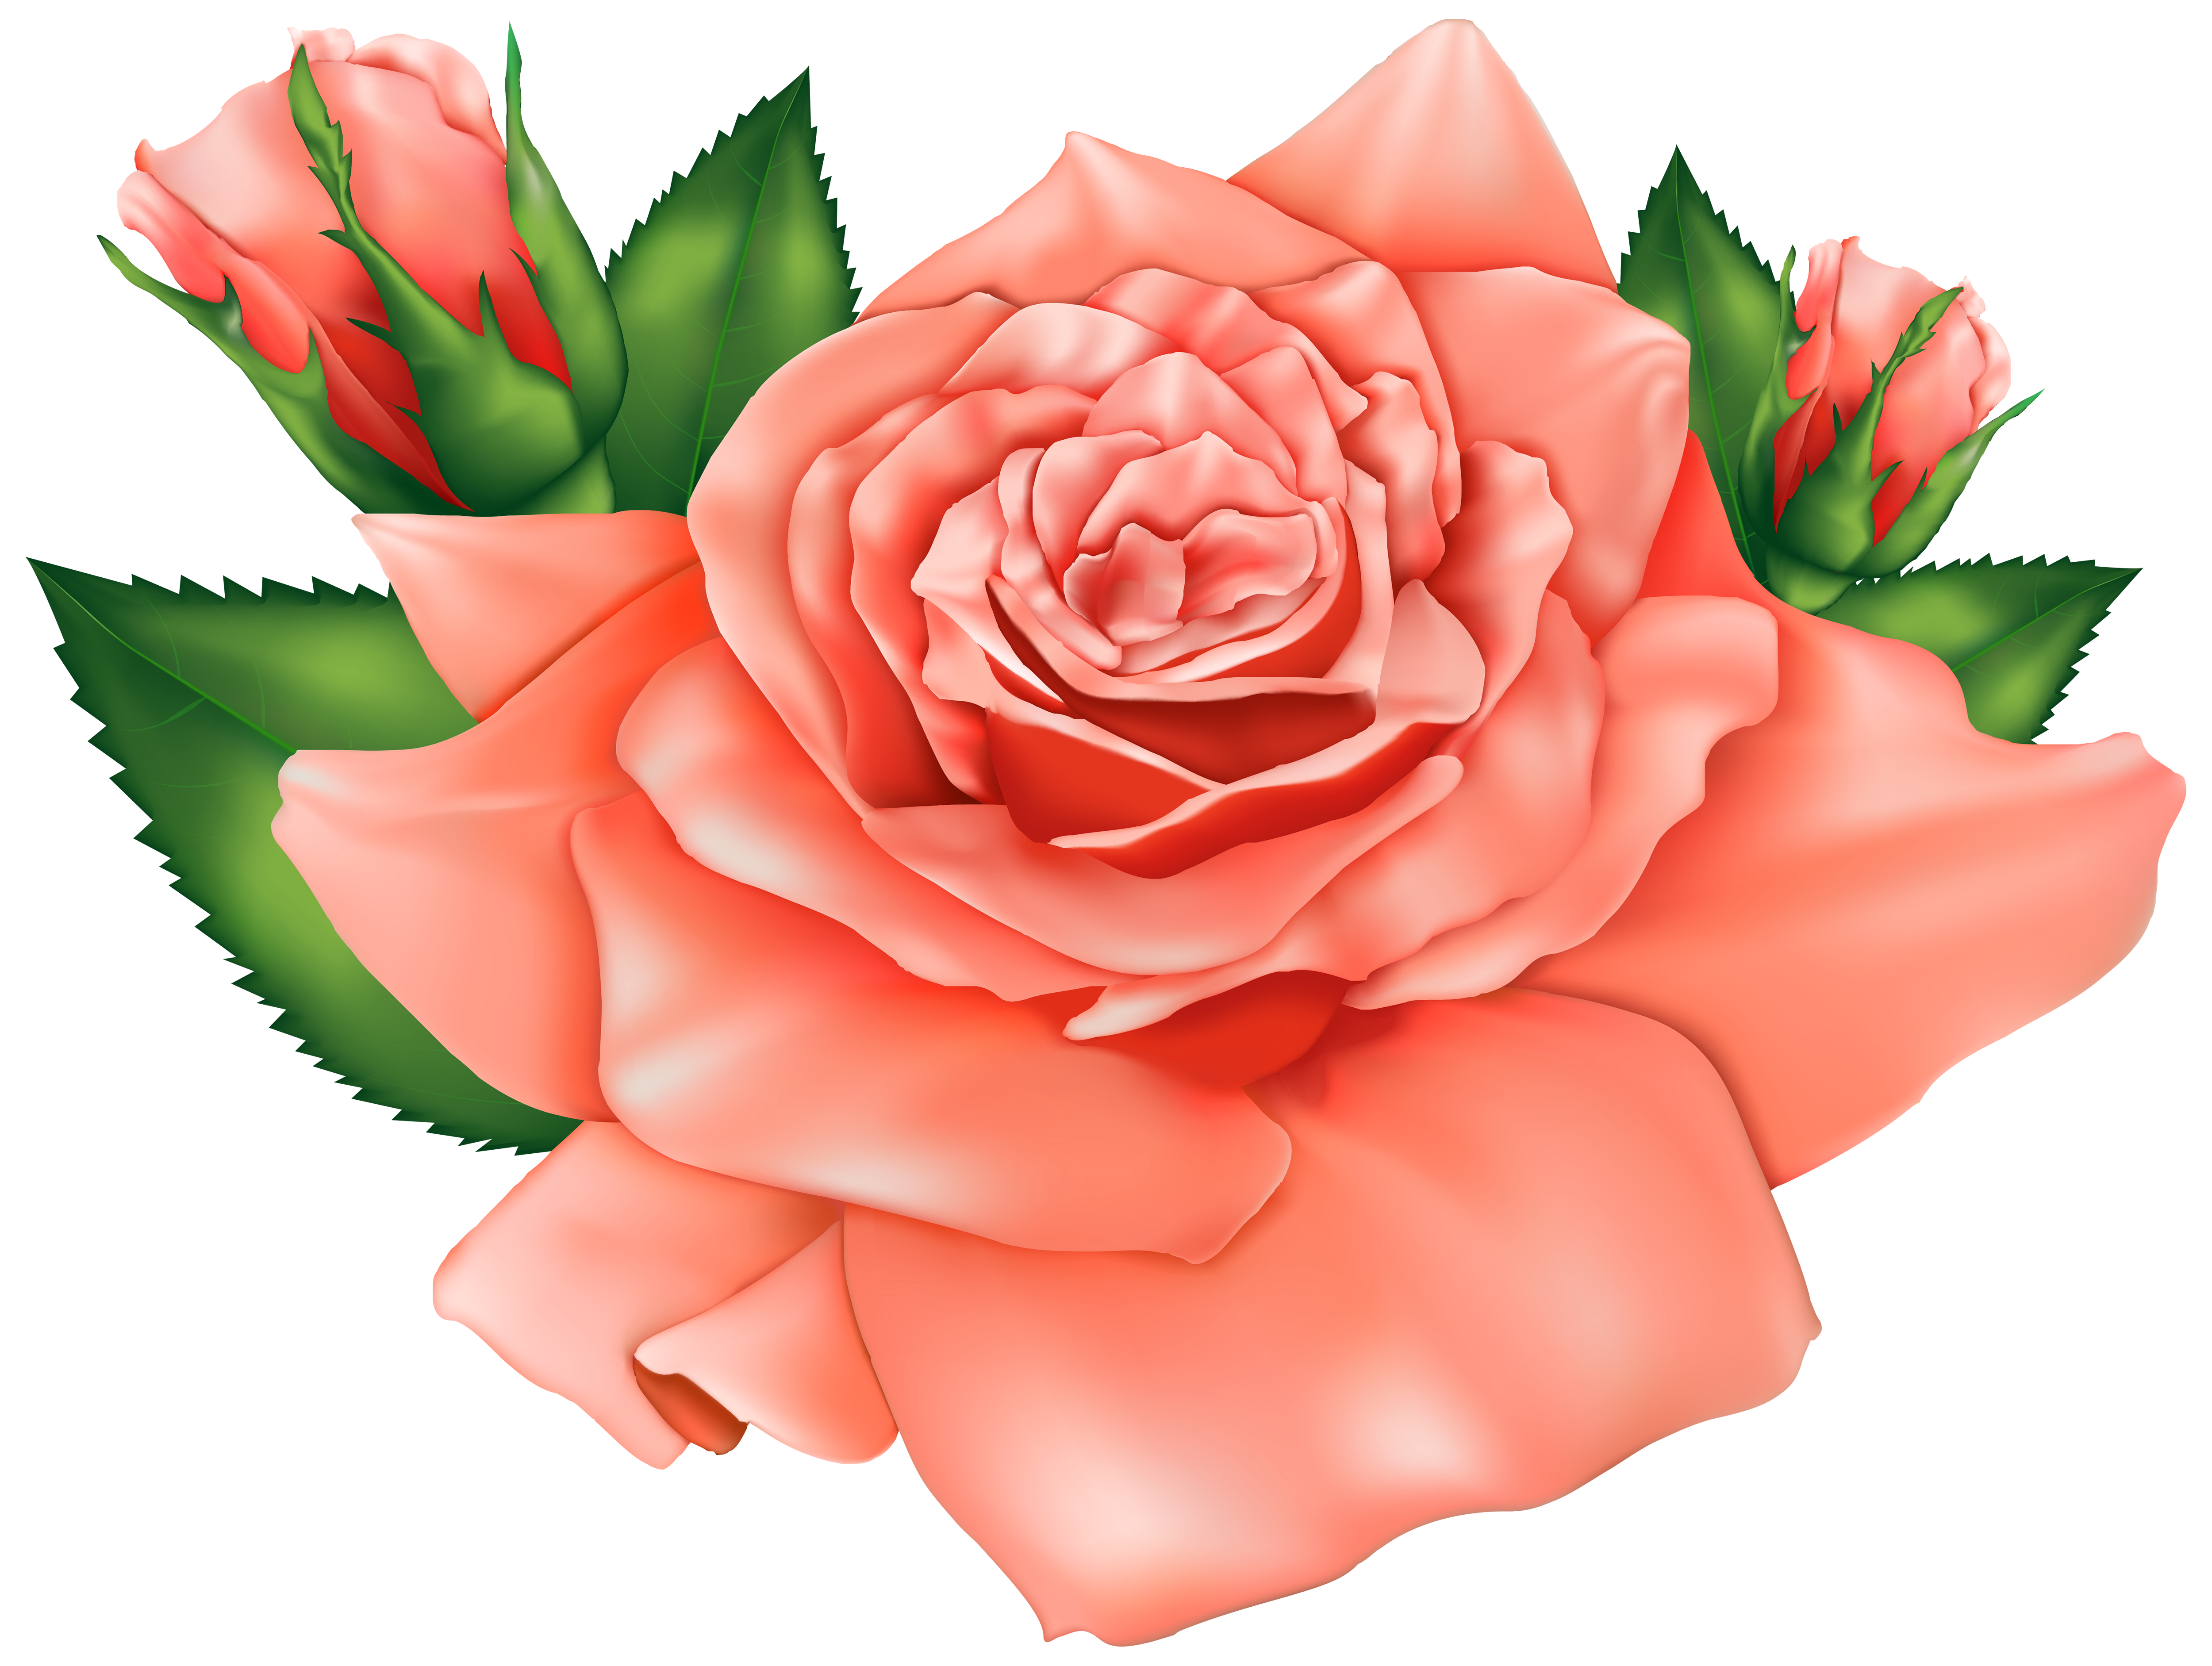 Clipart roses peach rose. Orange png image gallery